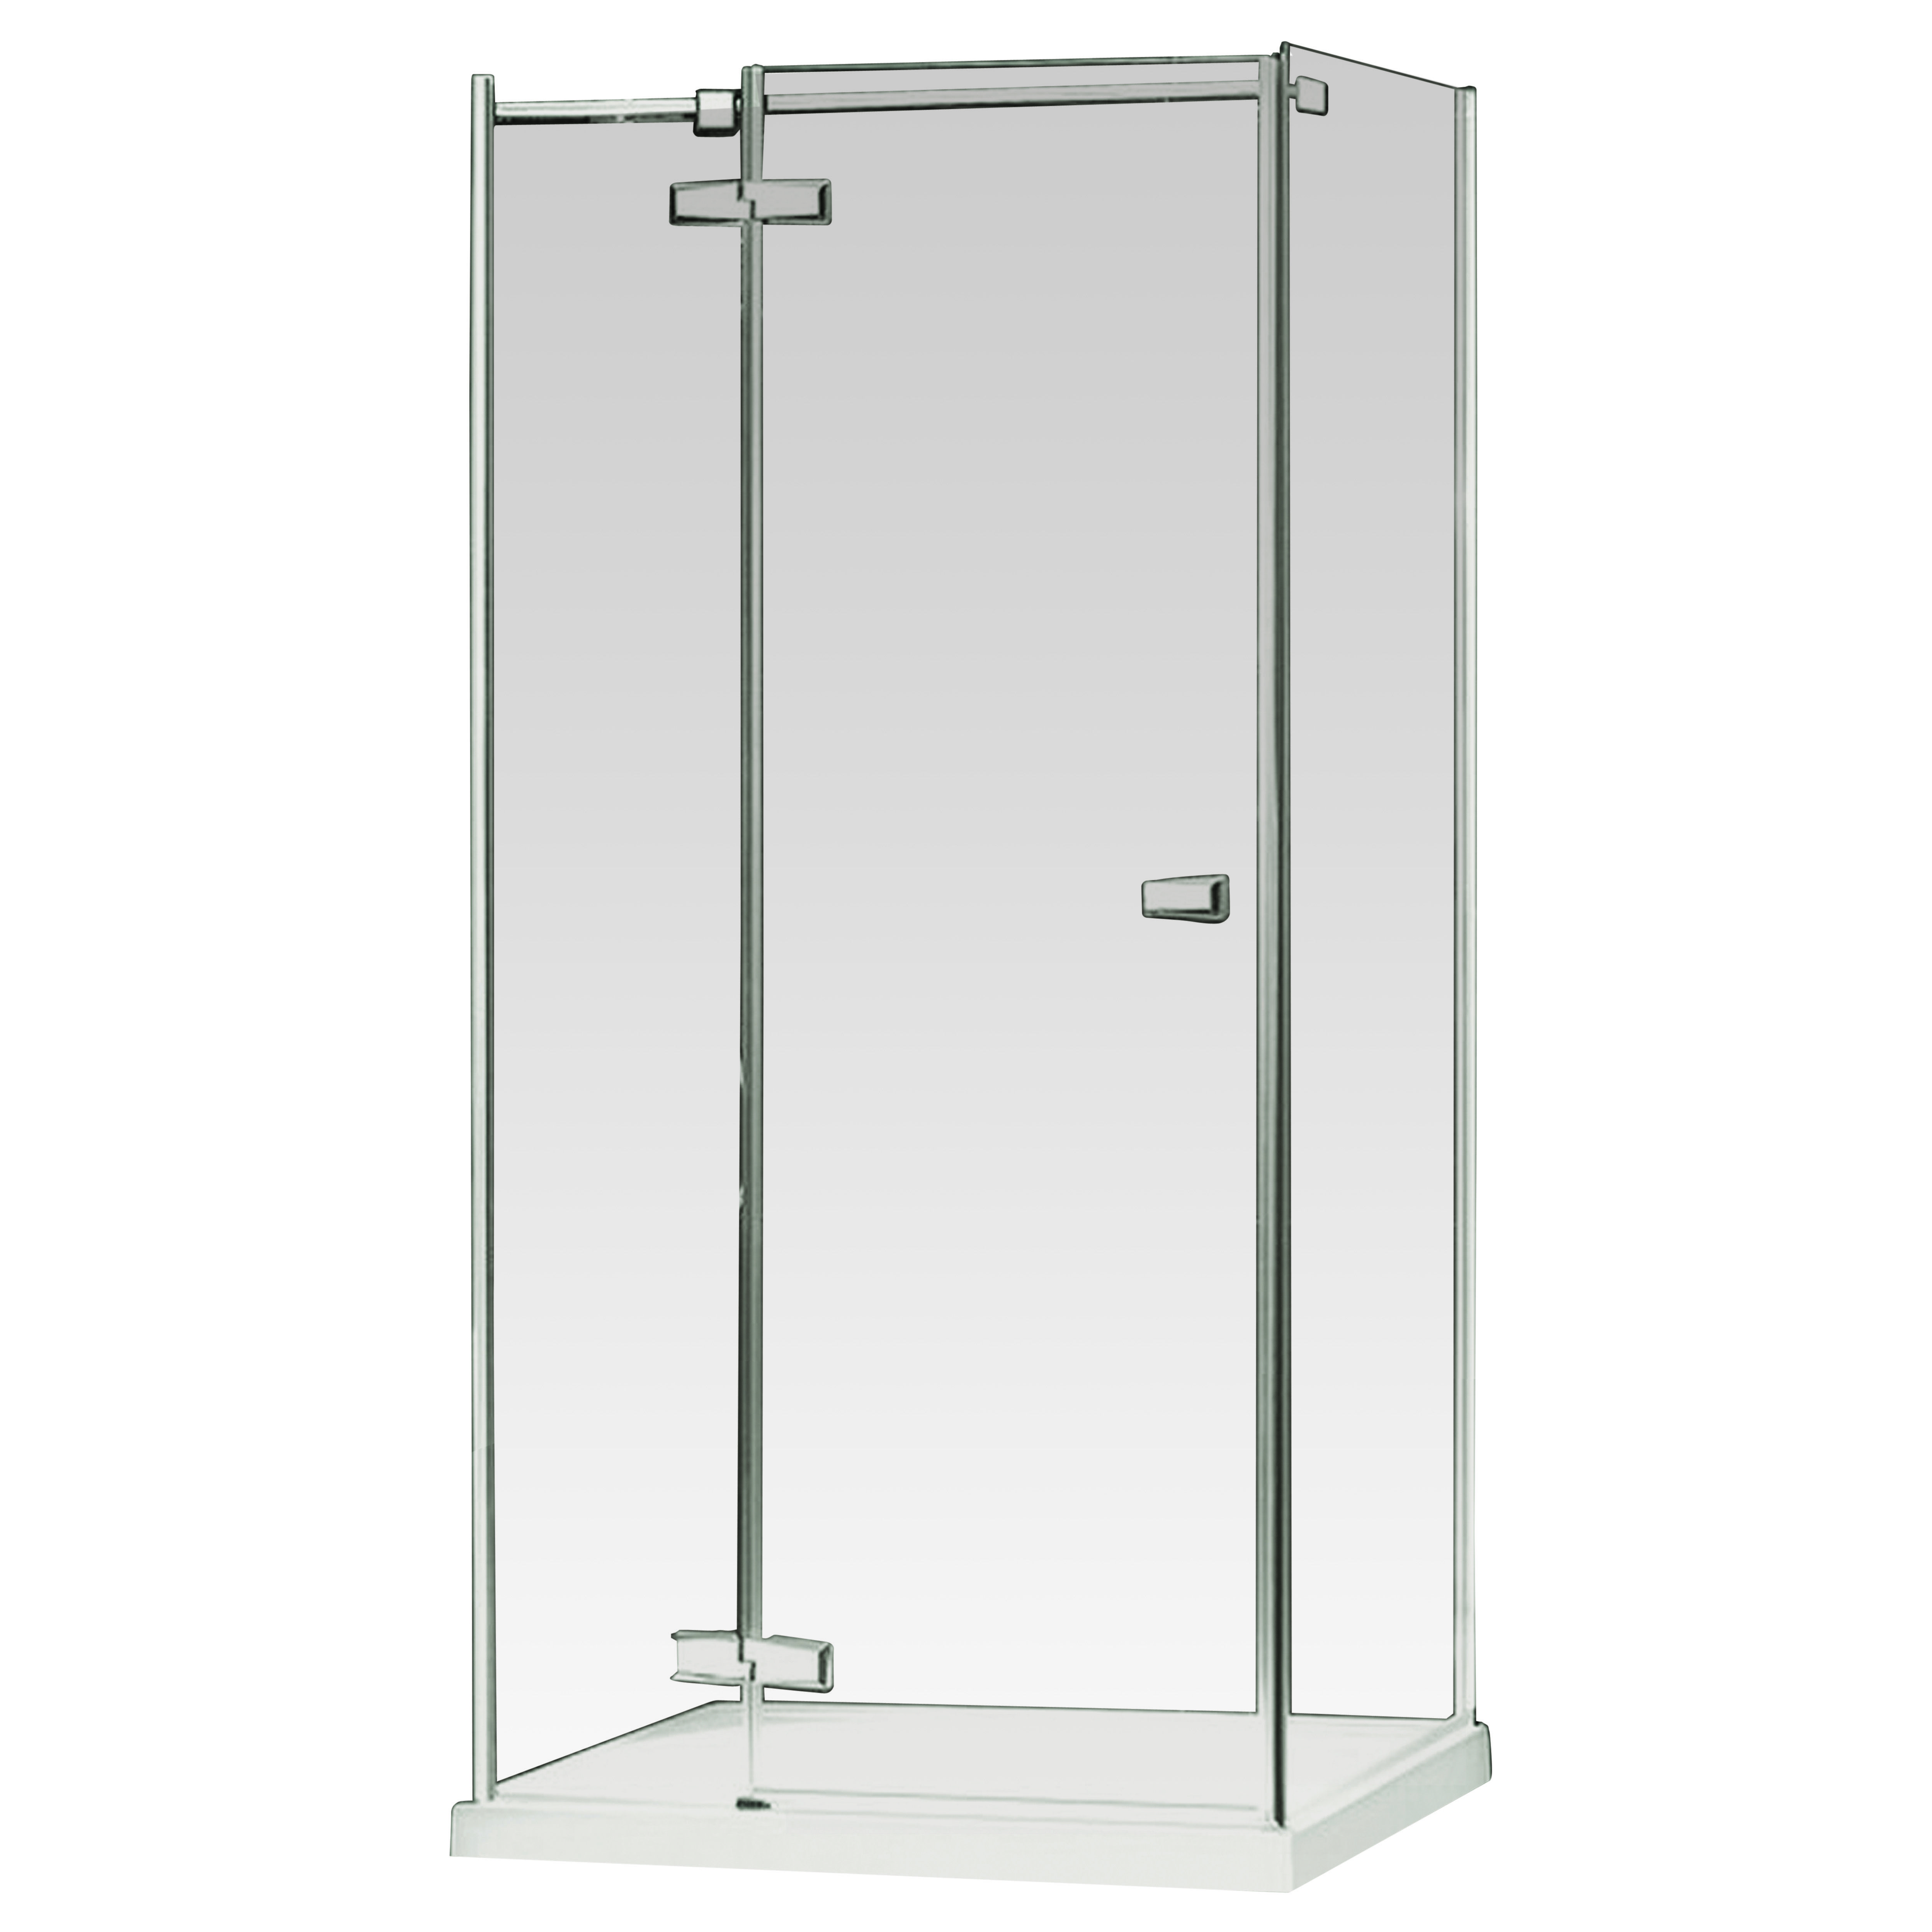 Bunnings Bathroom Vanity Find Award 900 X 620 X 160mm 2 Door Supreme Shaving Cabinet At